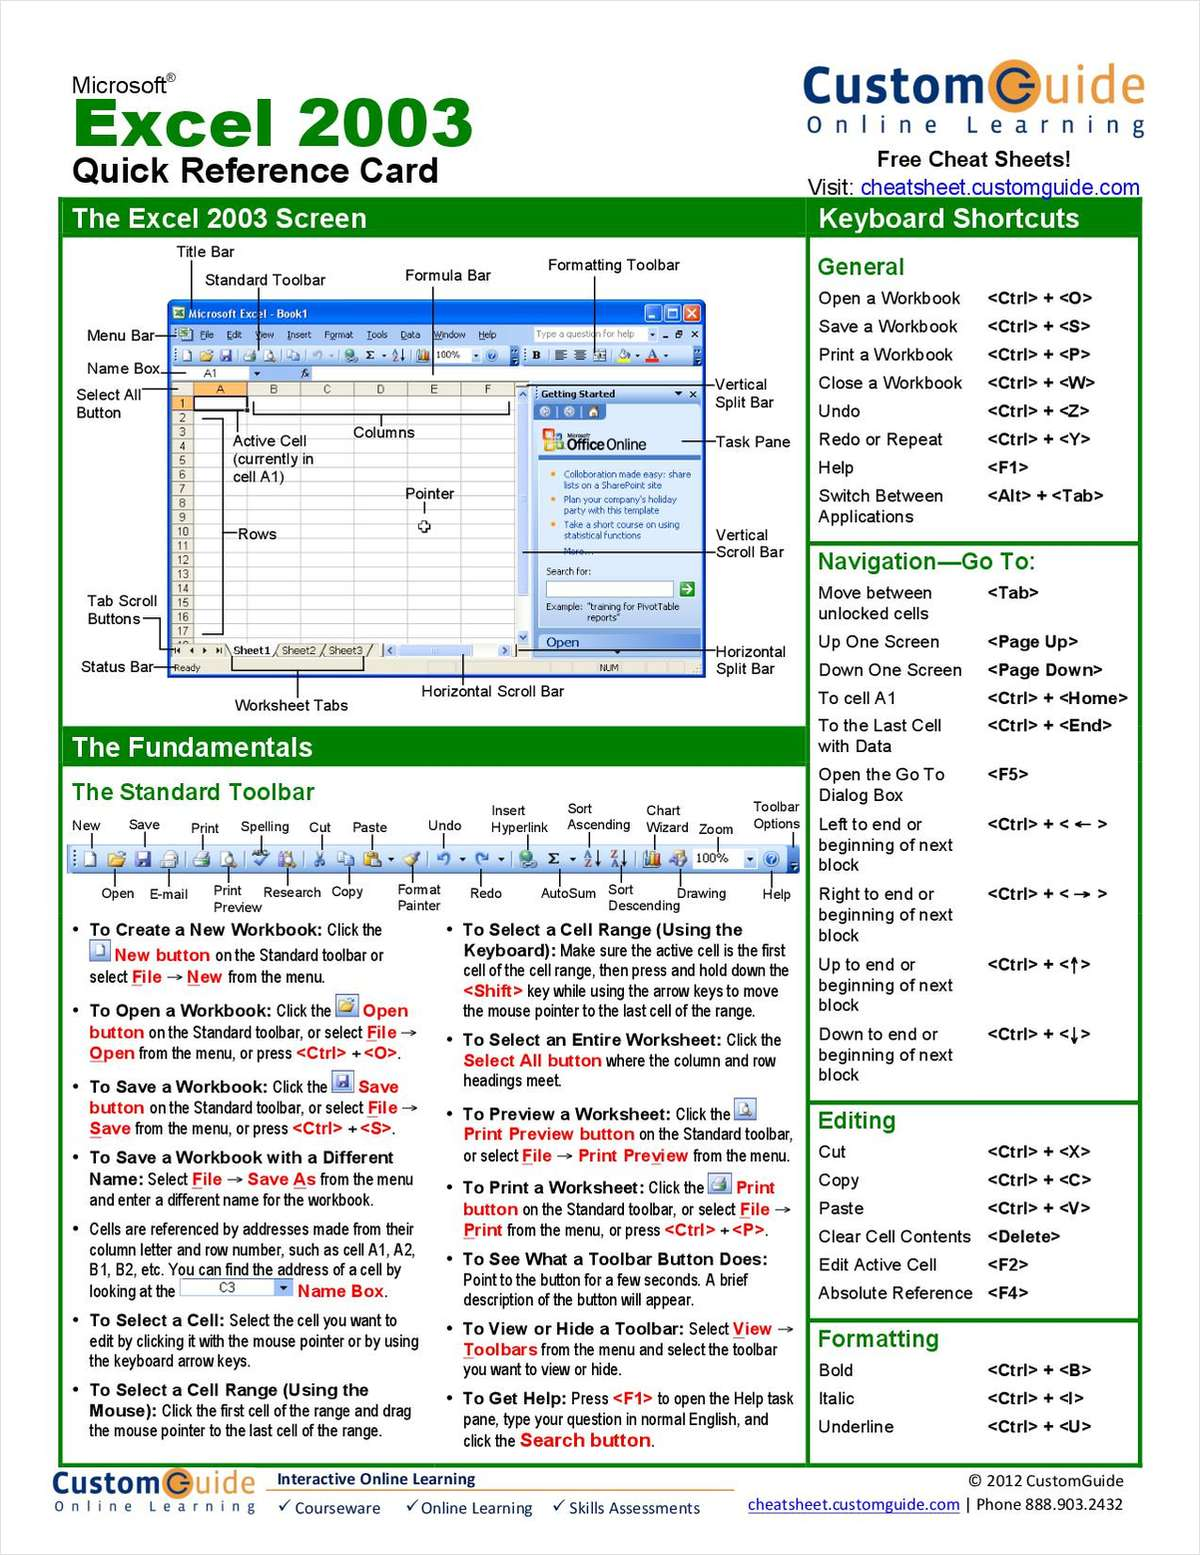 Microsoft Excel Free Quick Reference Card Free